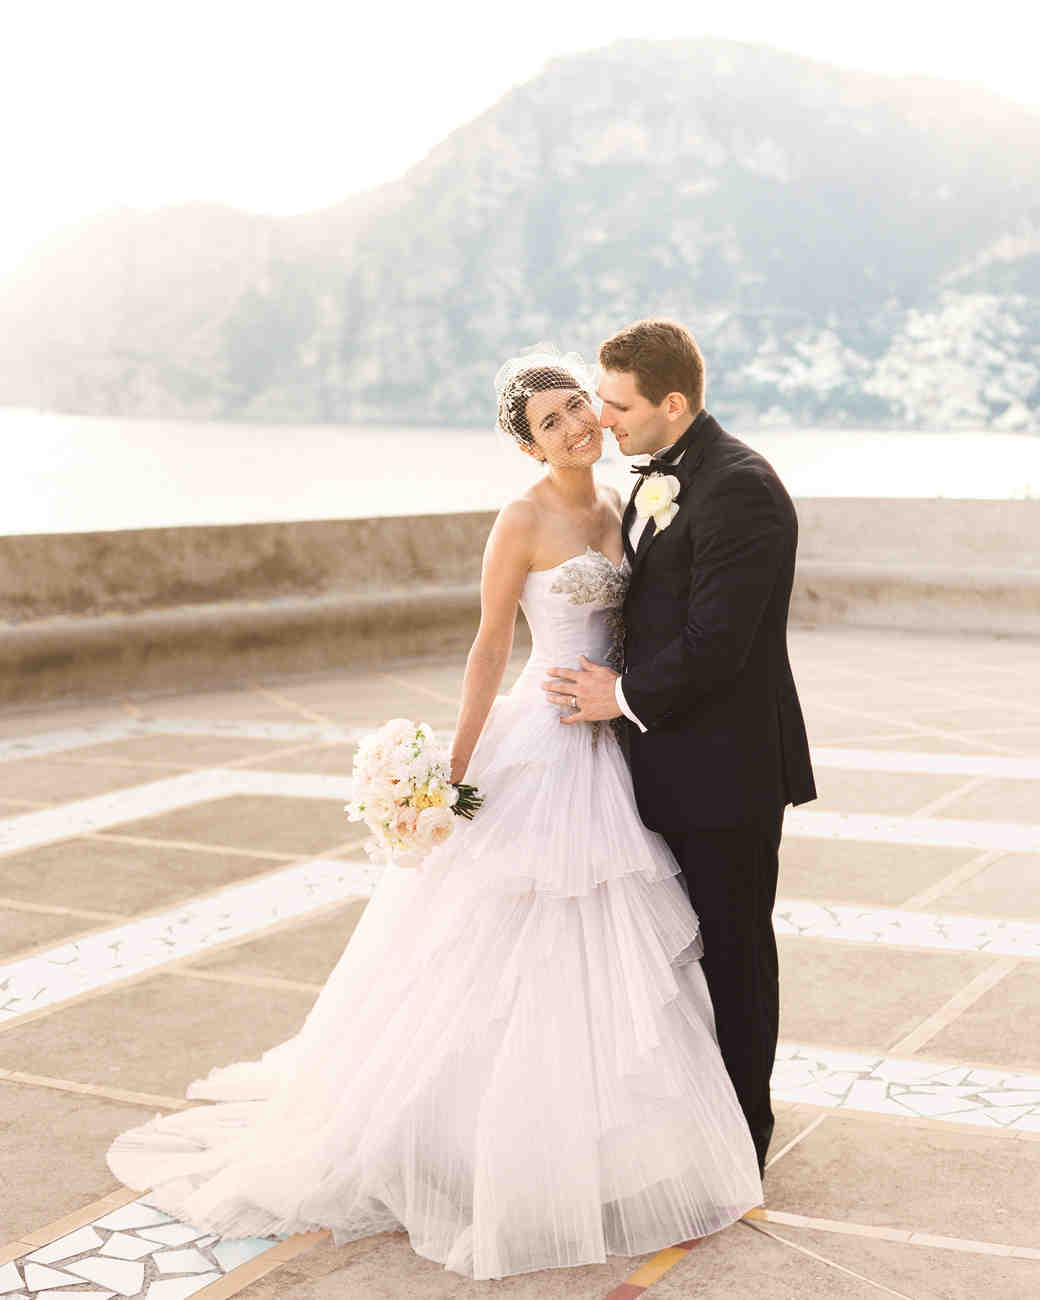 michelle-christopher-positano-bride-groom-0776-s111681.jpg